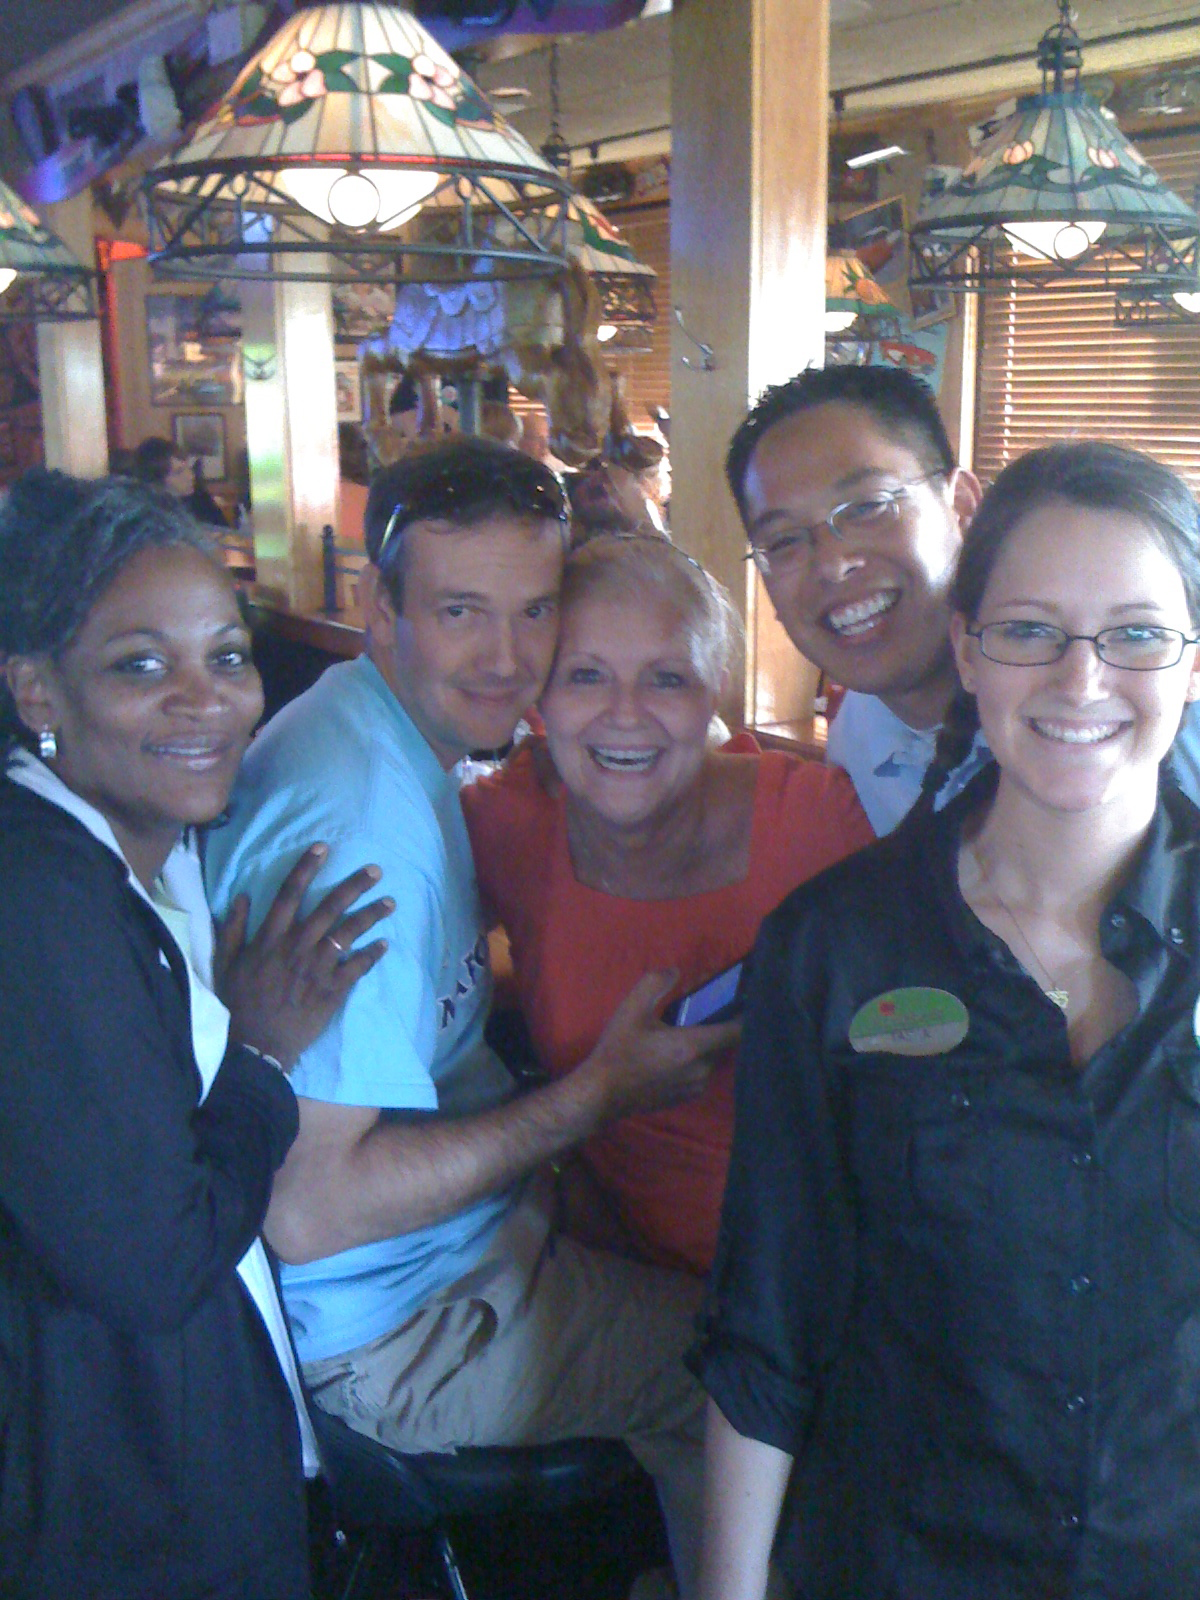 Terrylyn, Captain My Captain, Lynn (dang dootie), myself and our hostess